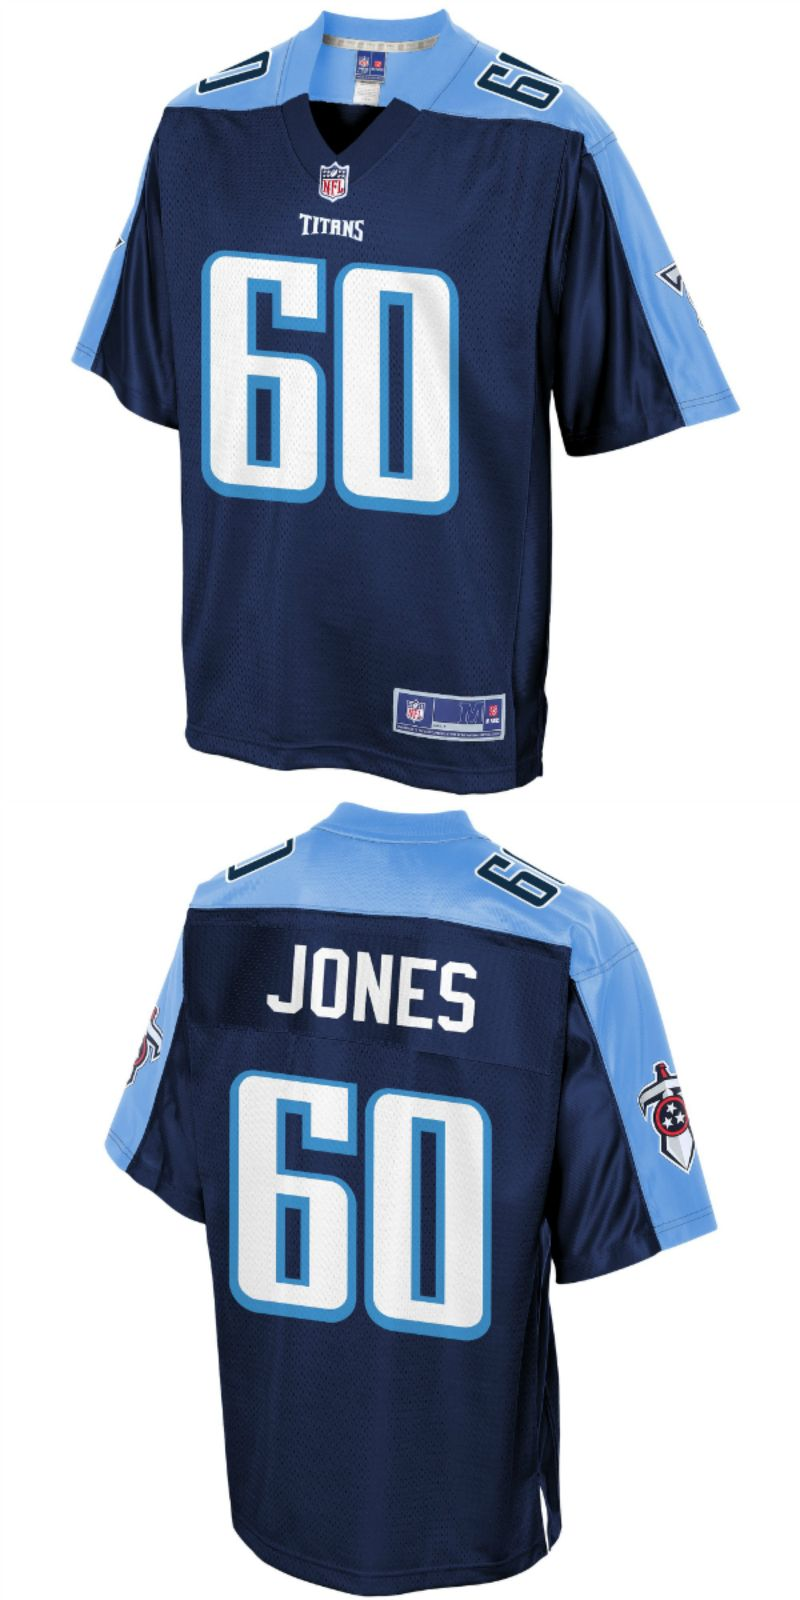 hot sale online 8607a 8c8fd UP TO 70% OFF. Ben Jones Tennessee Titans NFL Pro Line ...